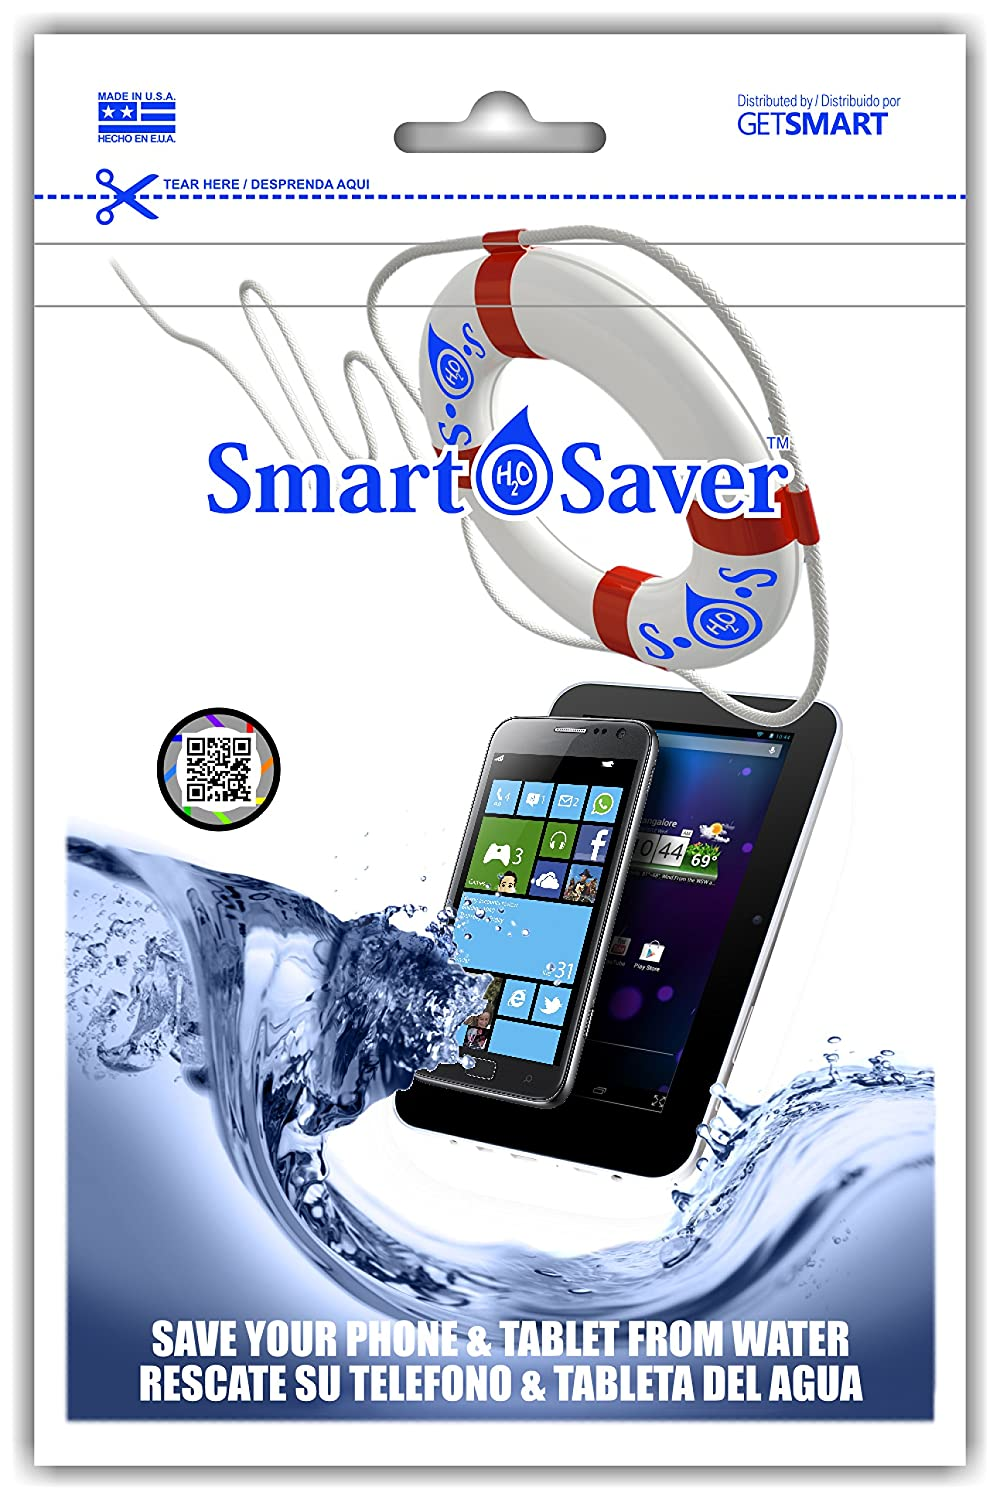 Amazon.com: SmartSaver - Saves Electronic devices after immersion in water: Cell Phones & Accessories